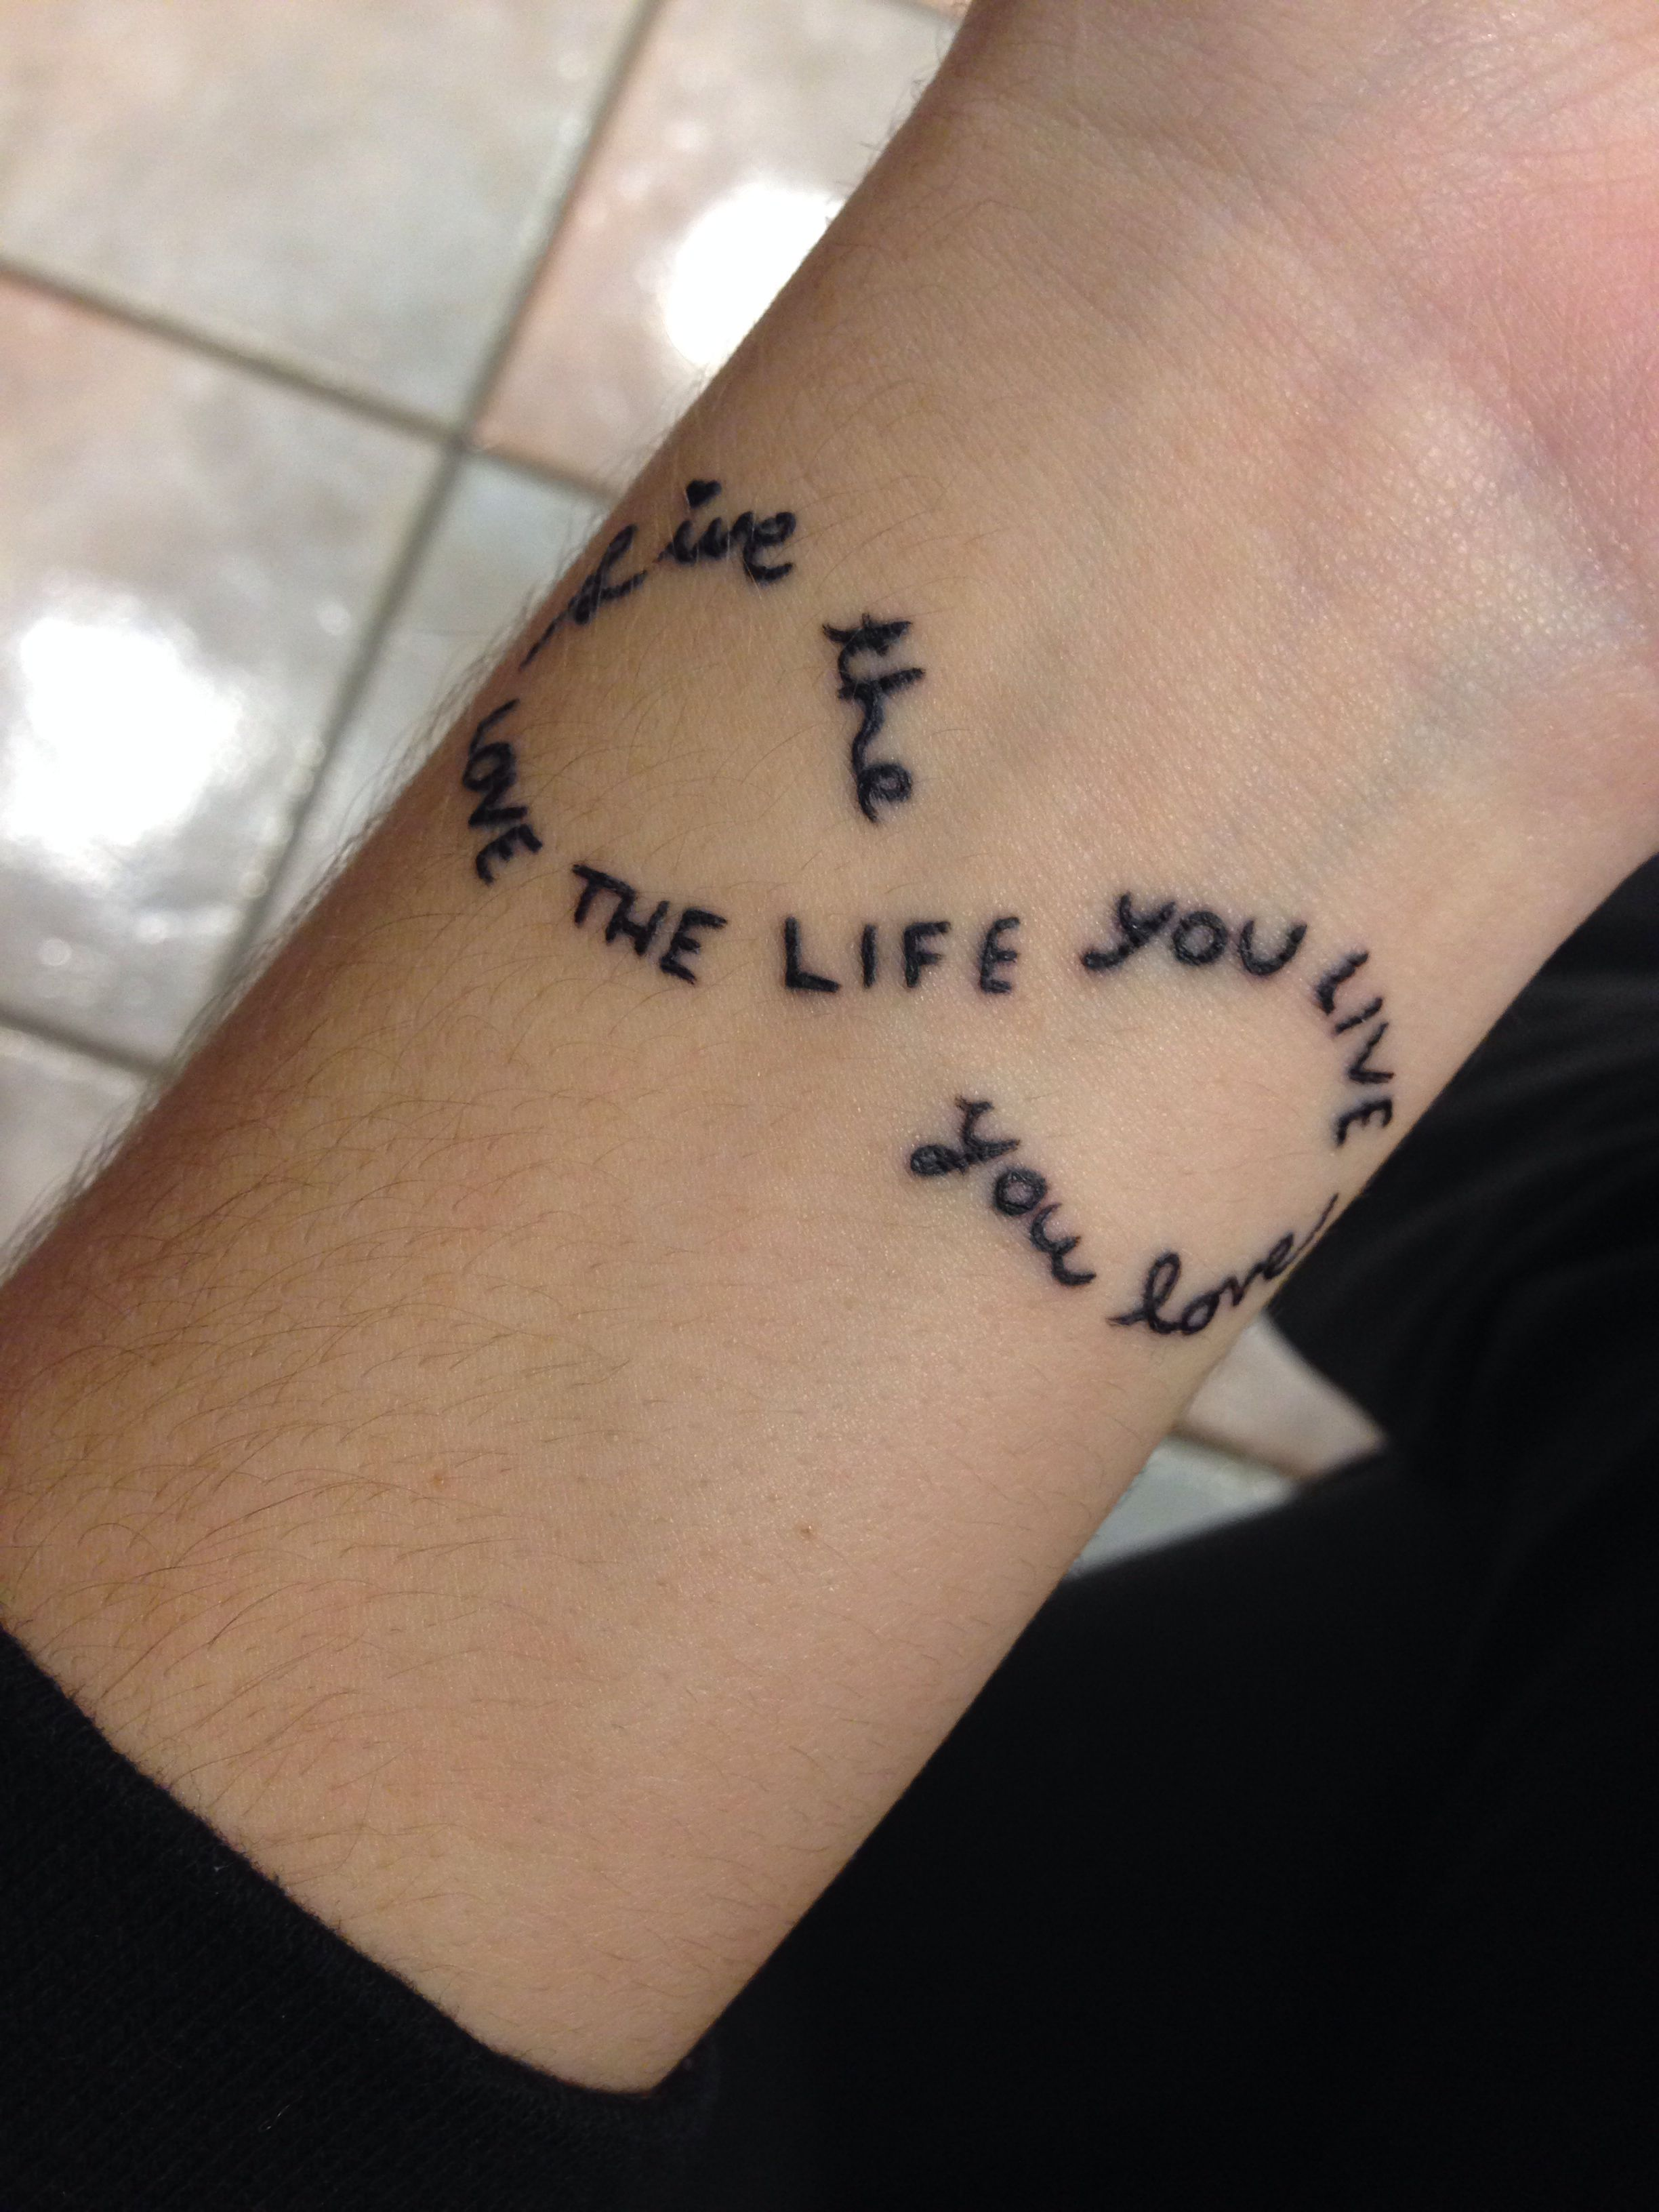 My Tattoo Turned Out Amazing Live The Life You Love Love The